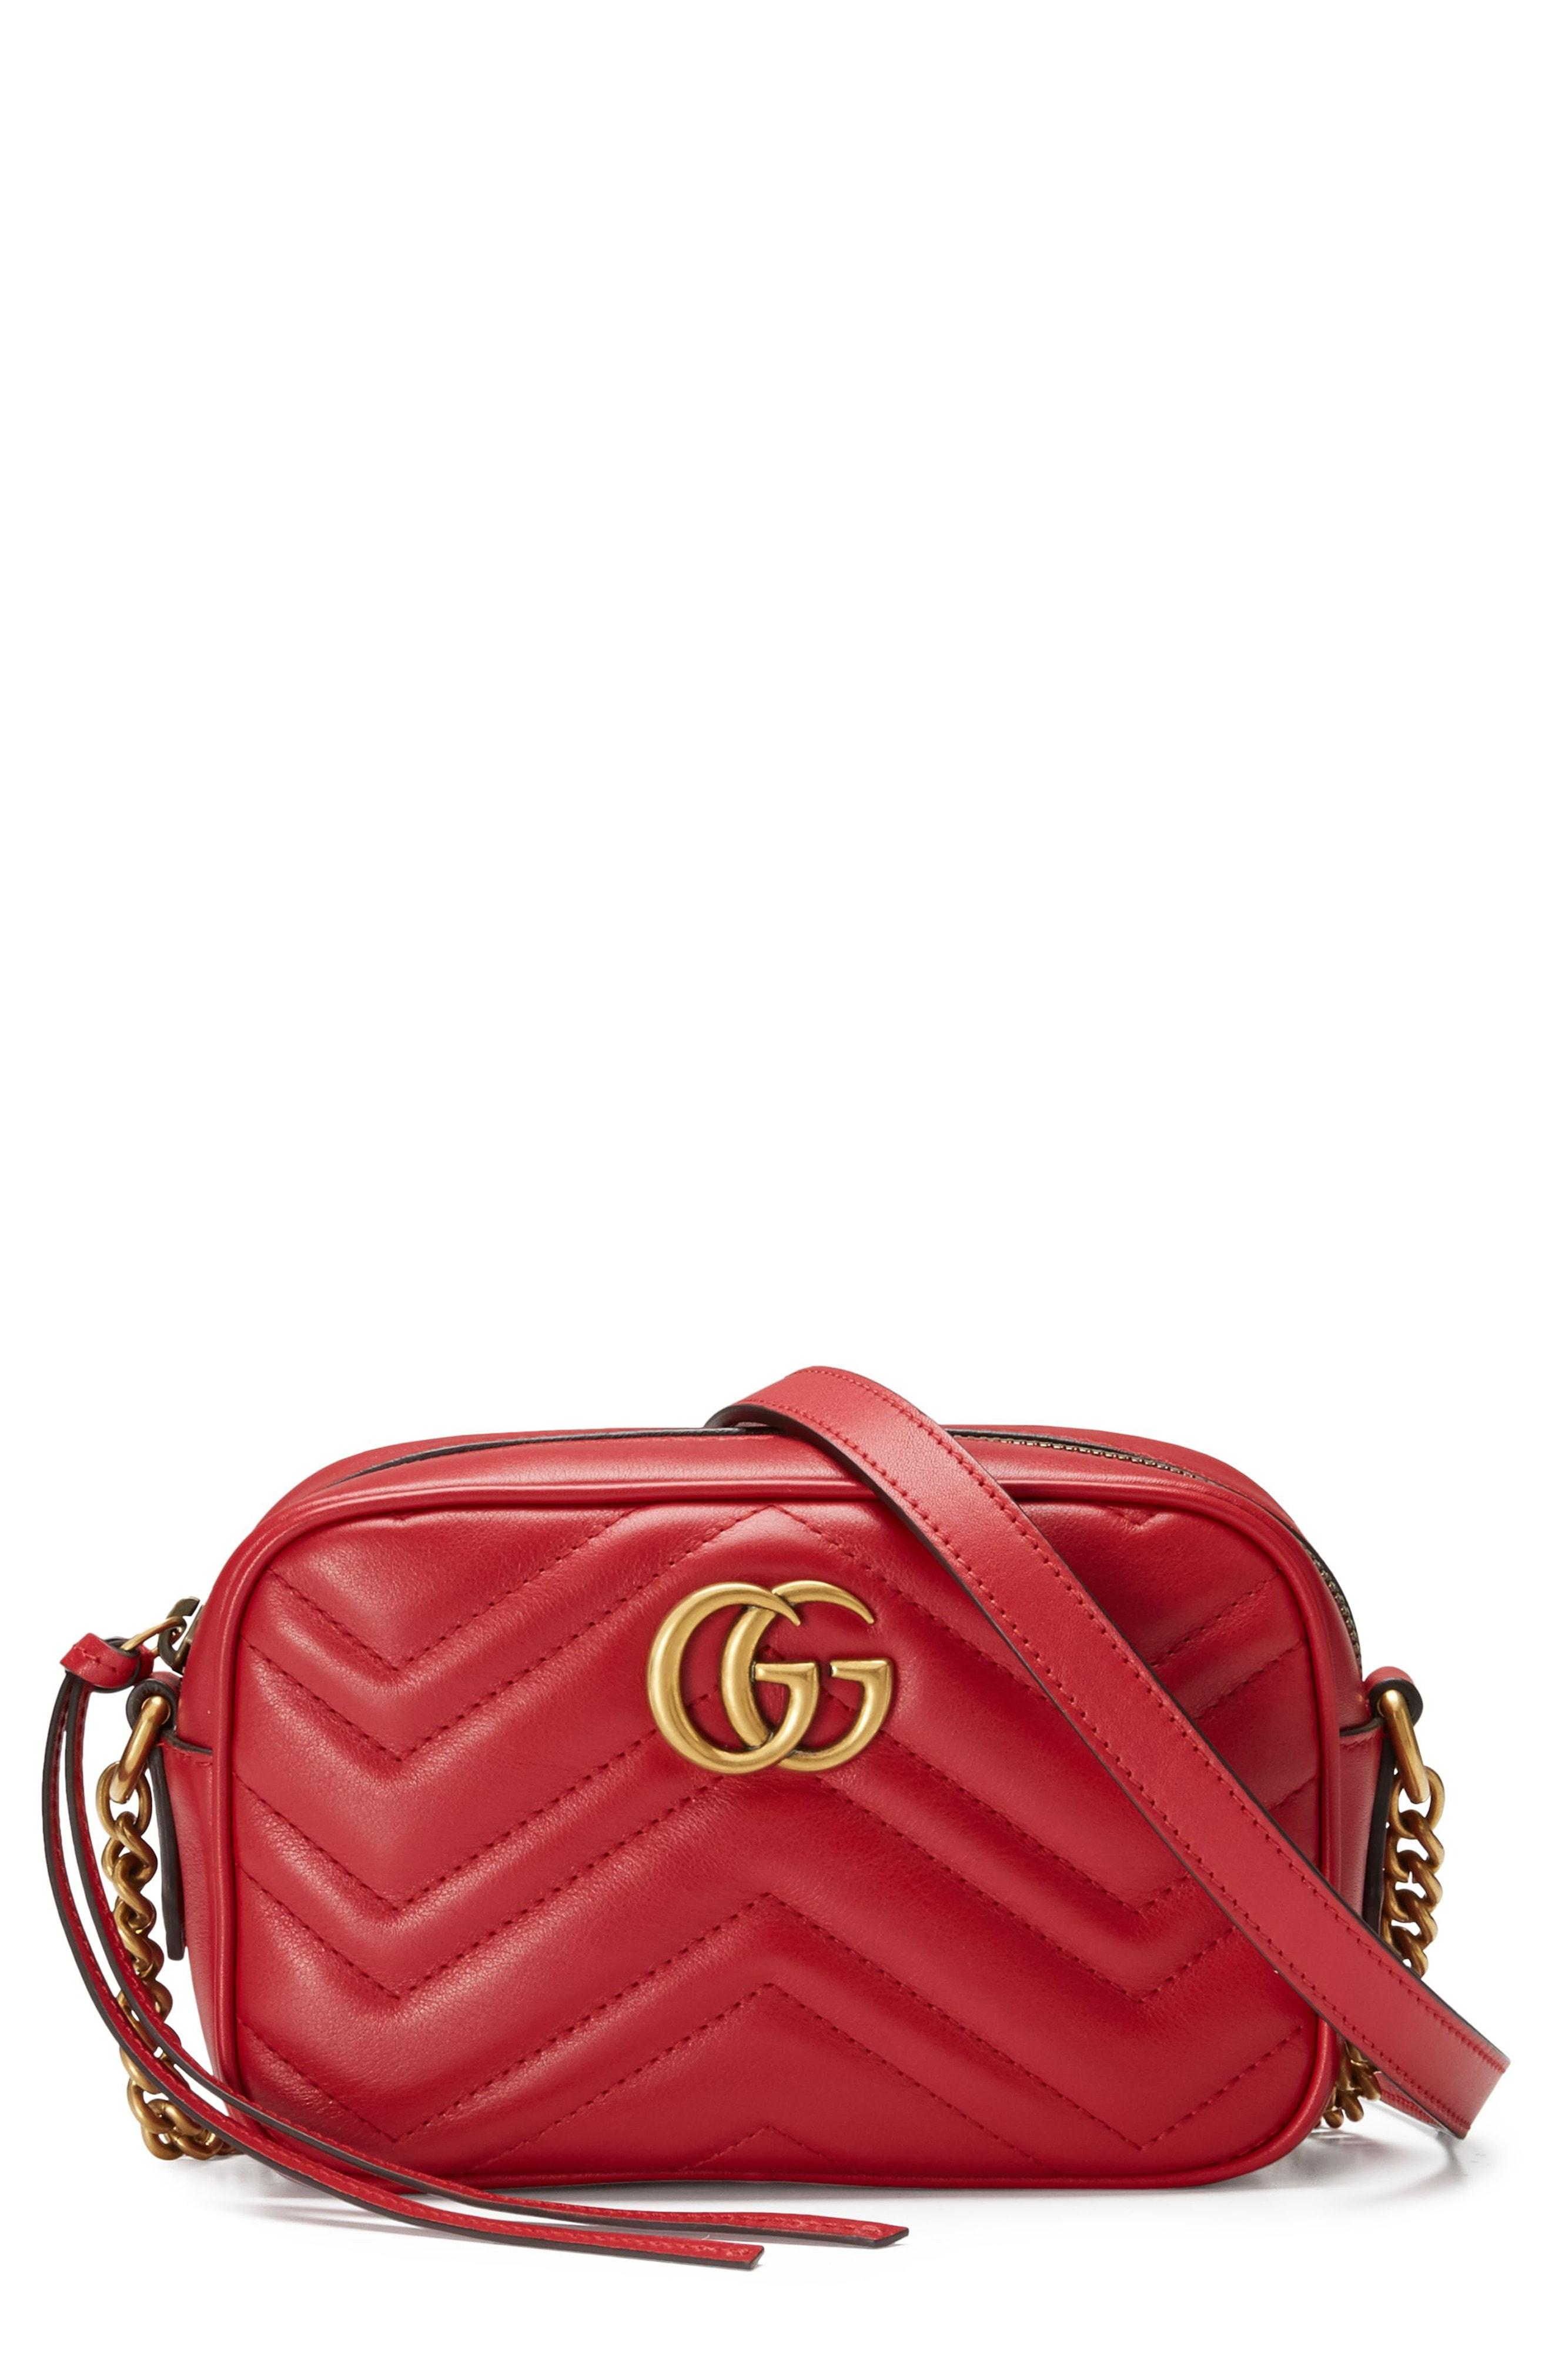 2127a611d445 Gucci Women's Red Gg Marmont Mini Quilted Leather Cross-Body Bag ...